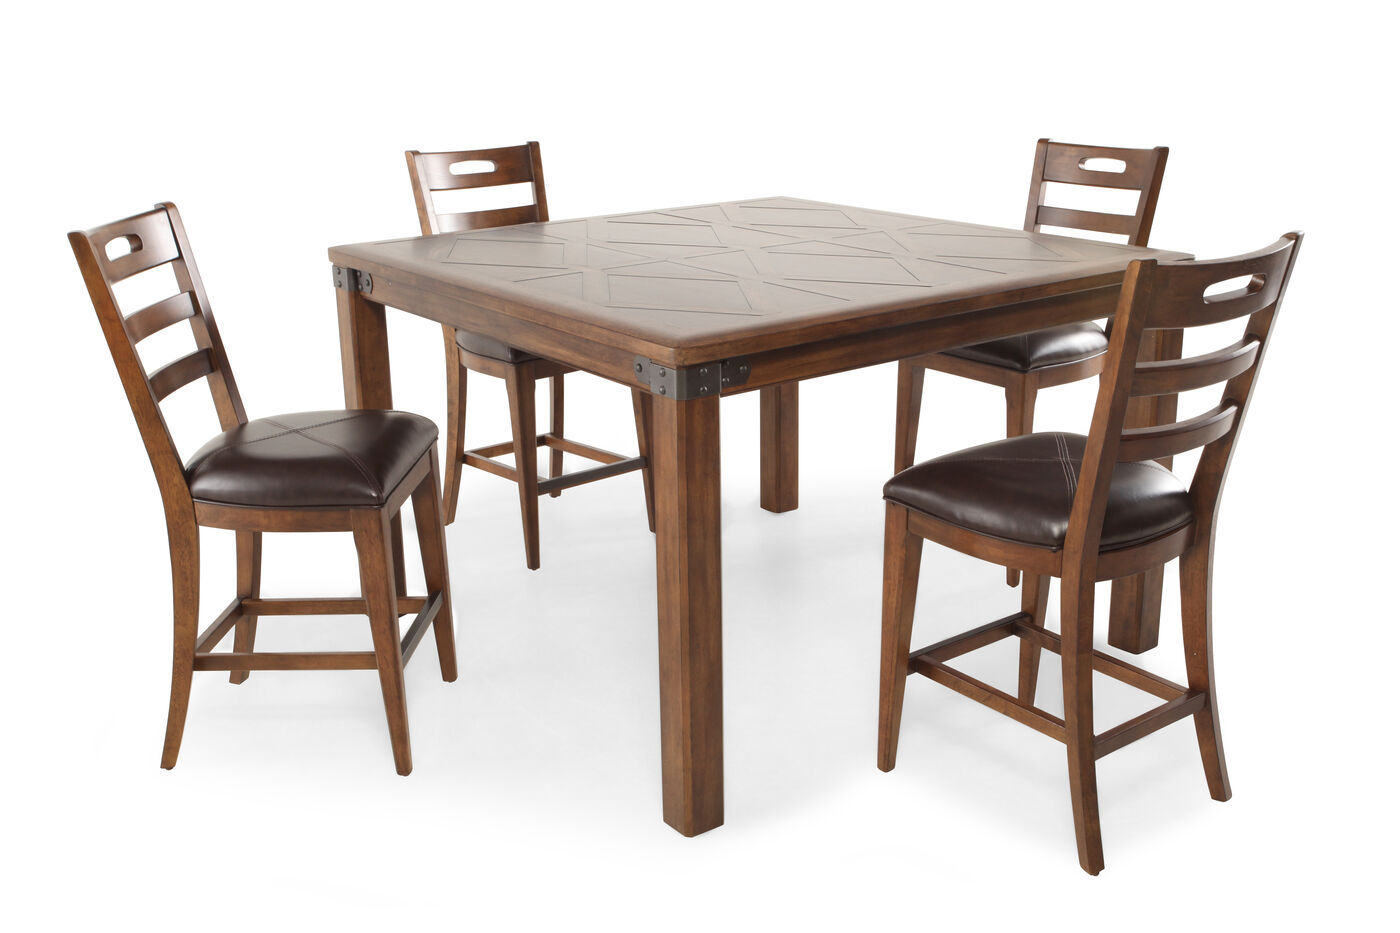 100 pulaski dining room set gorgeous cool furniture hidden compartments tags cool - Pulaski dining room ...